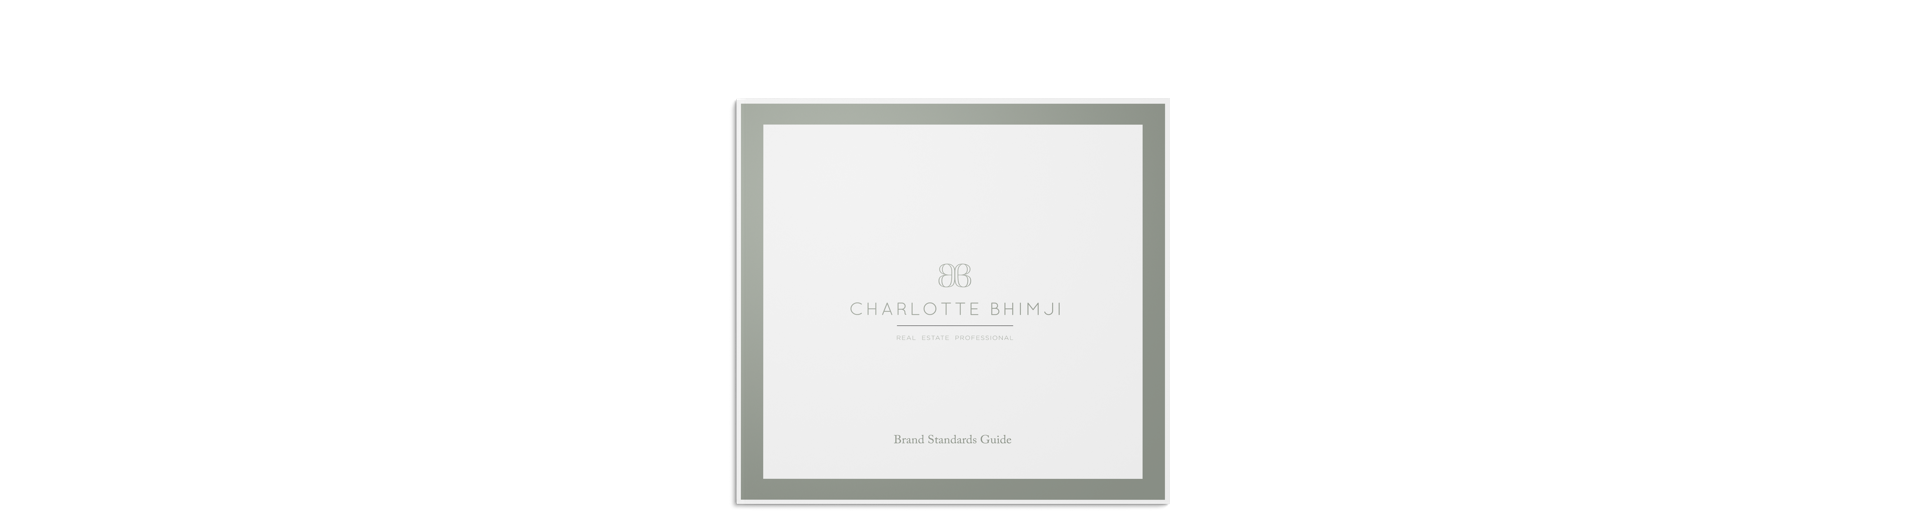 Realtor branding and website design for Charlotte Bhimji magazine branding